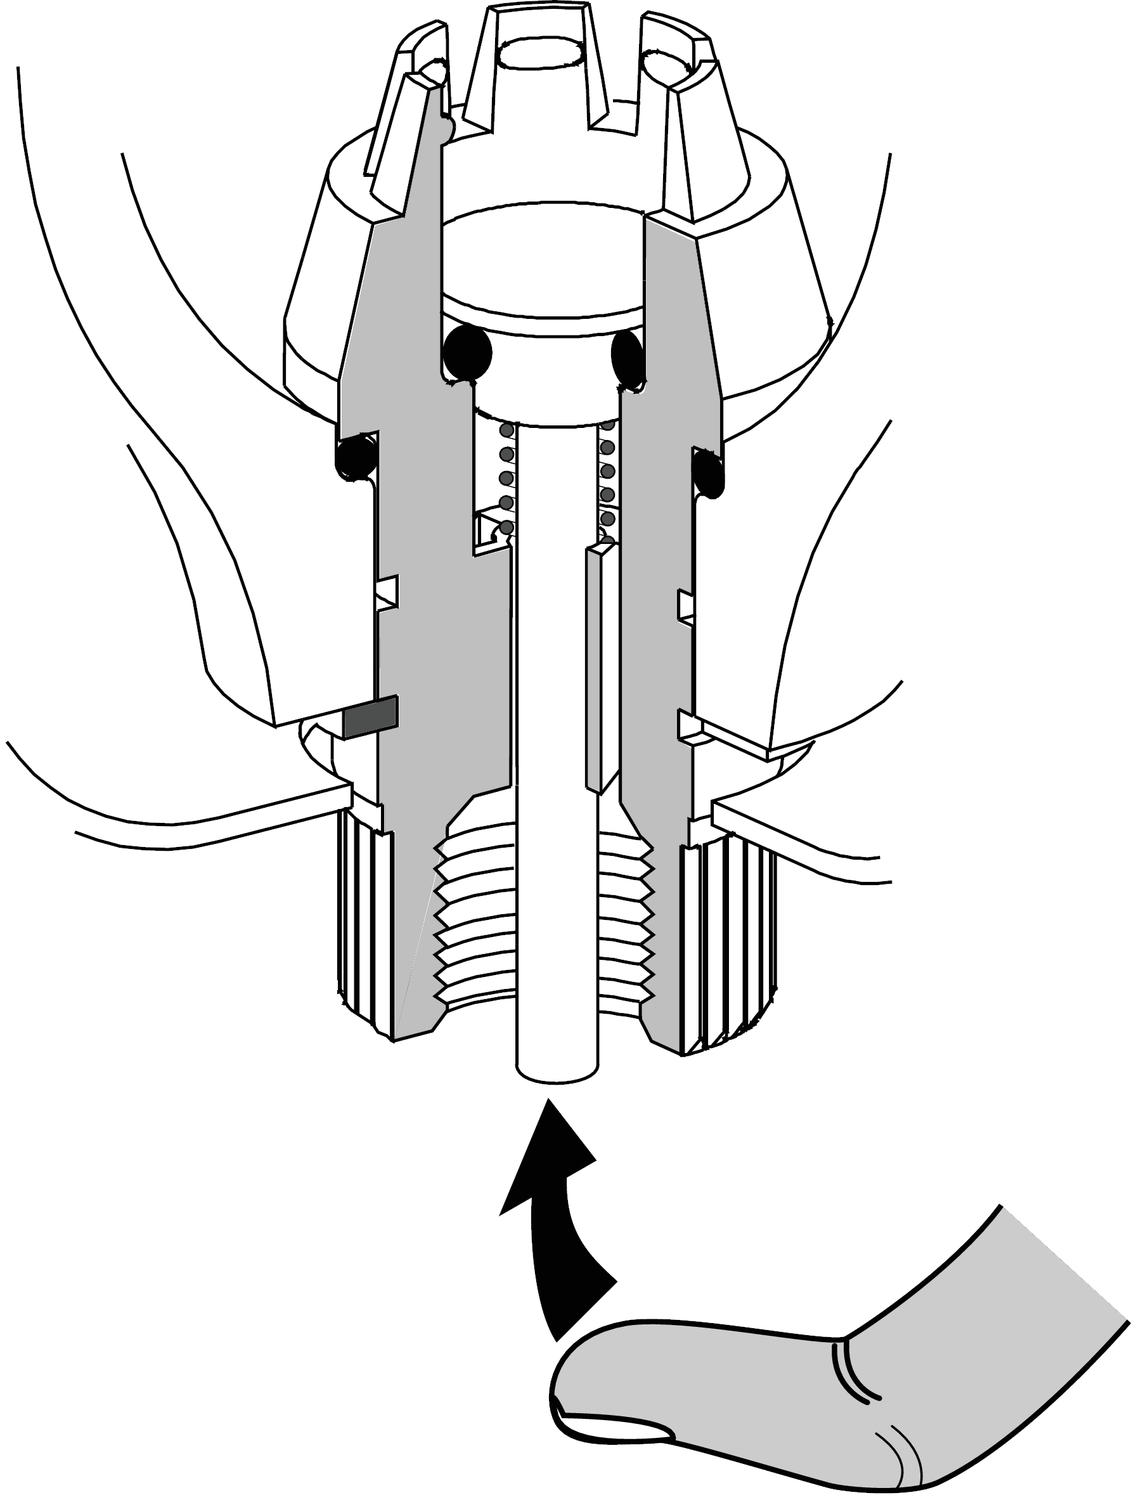 Illustration to semi automatic drainage